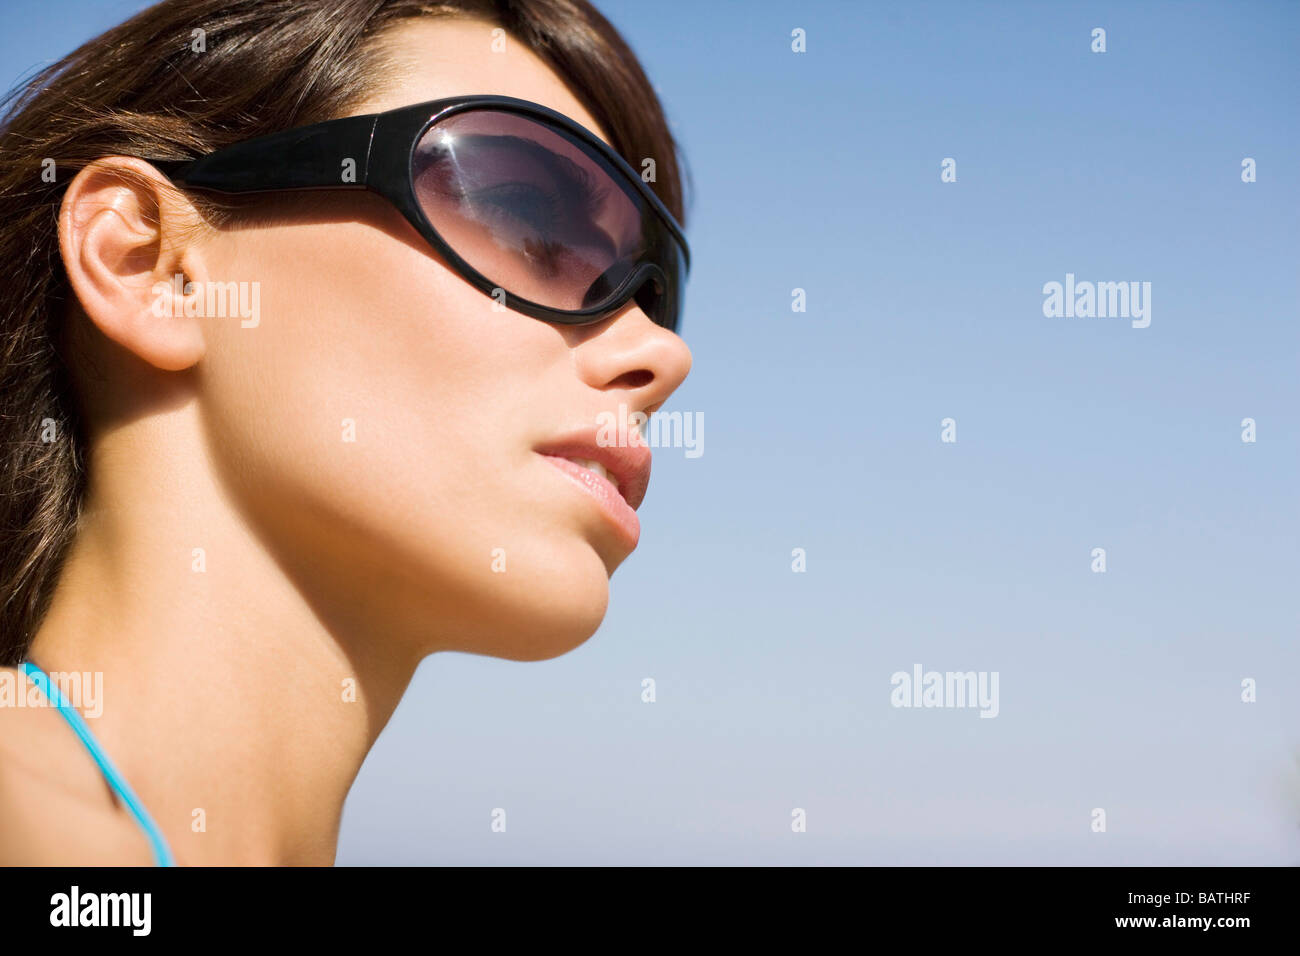 Woman wearing sunglasses. The lenses protect the eyes from the UV radiation insunlight. - Stock Image